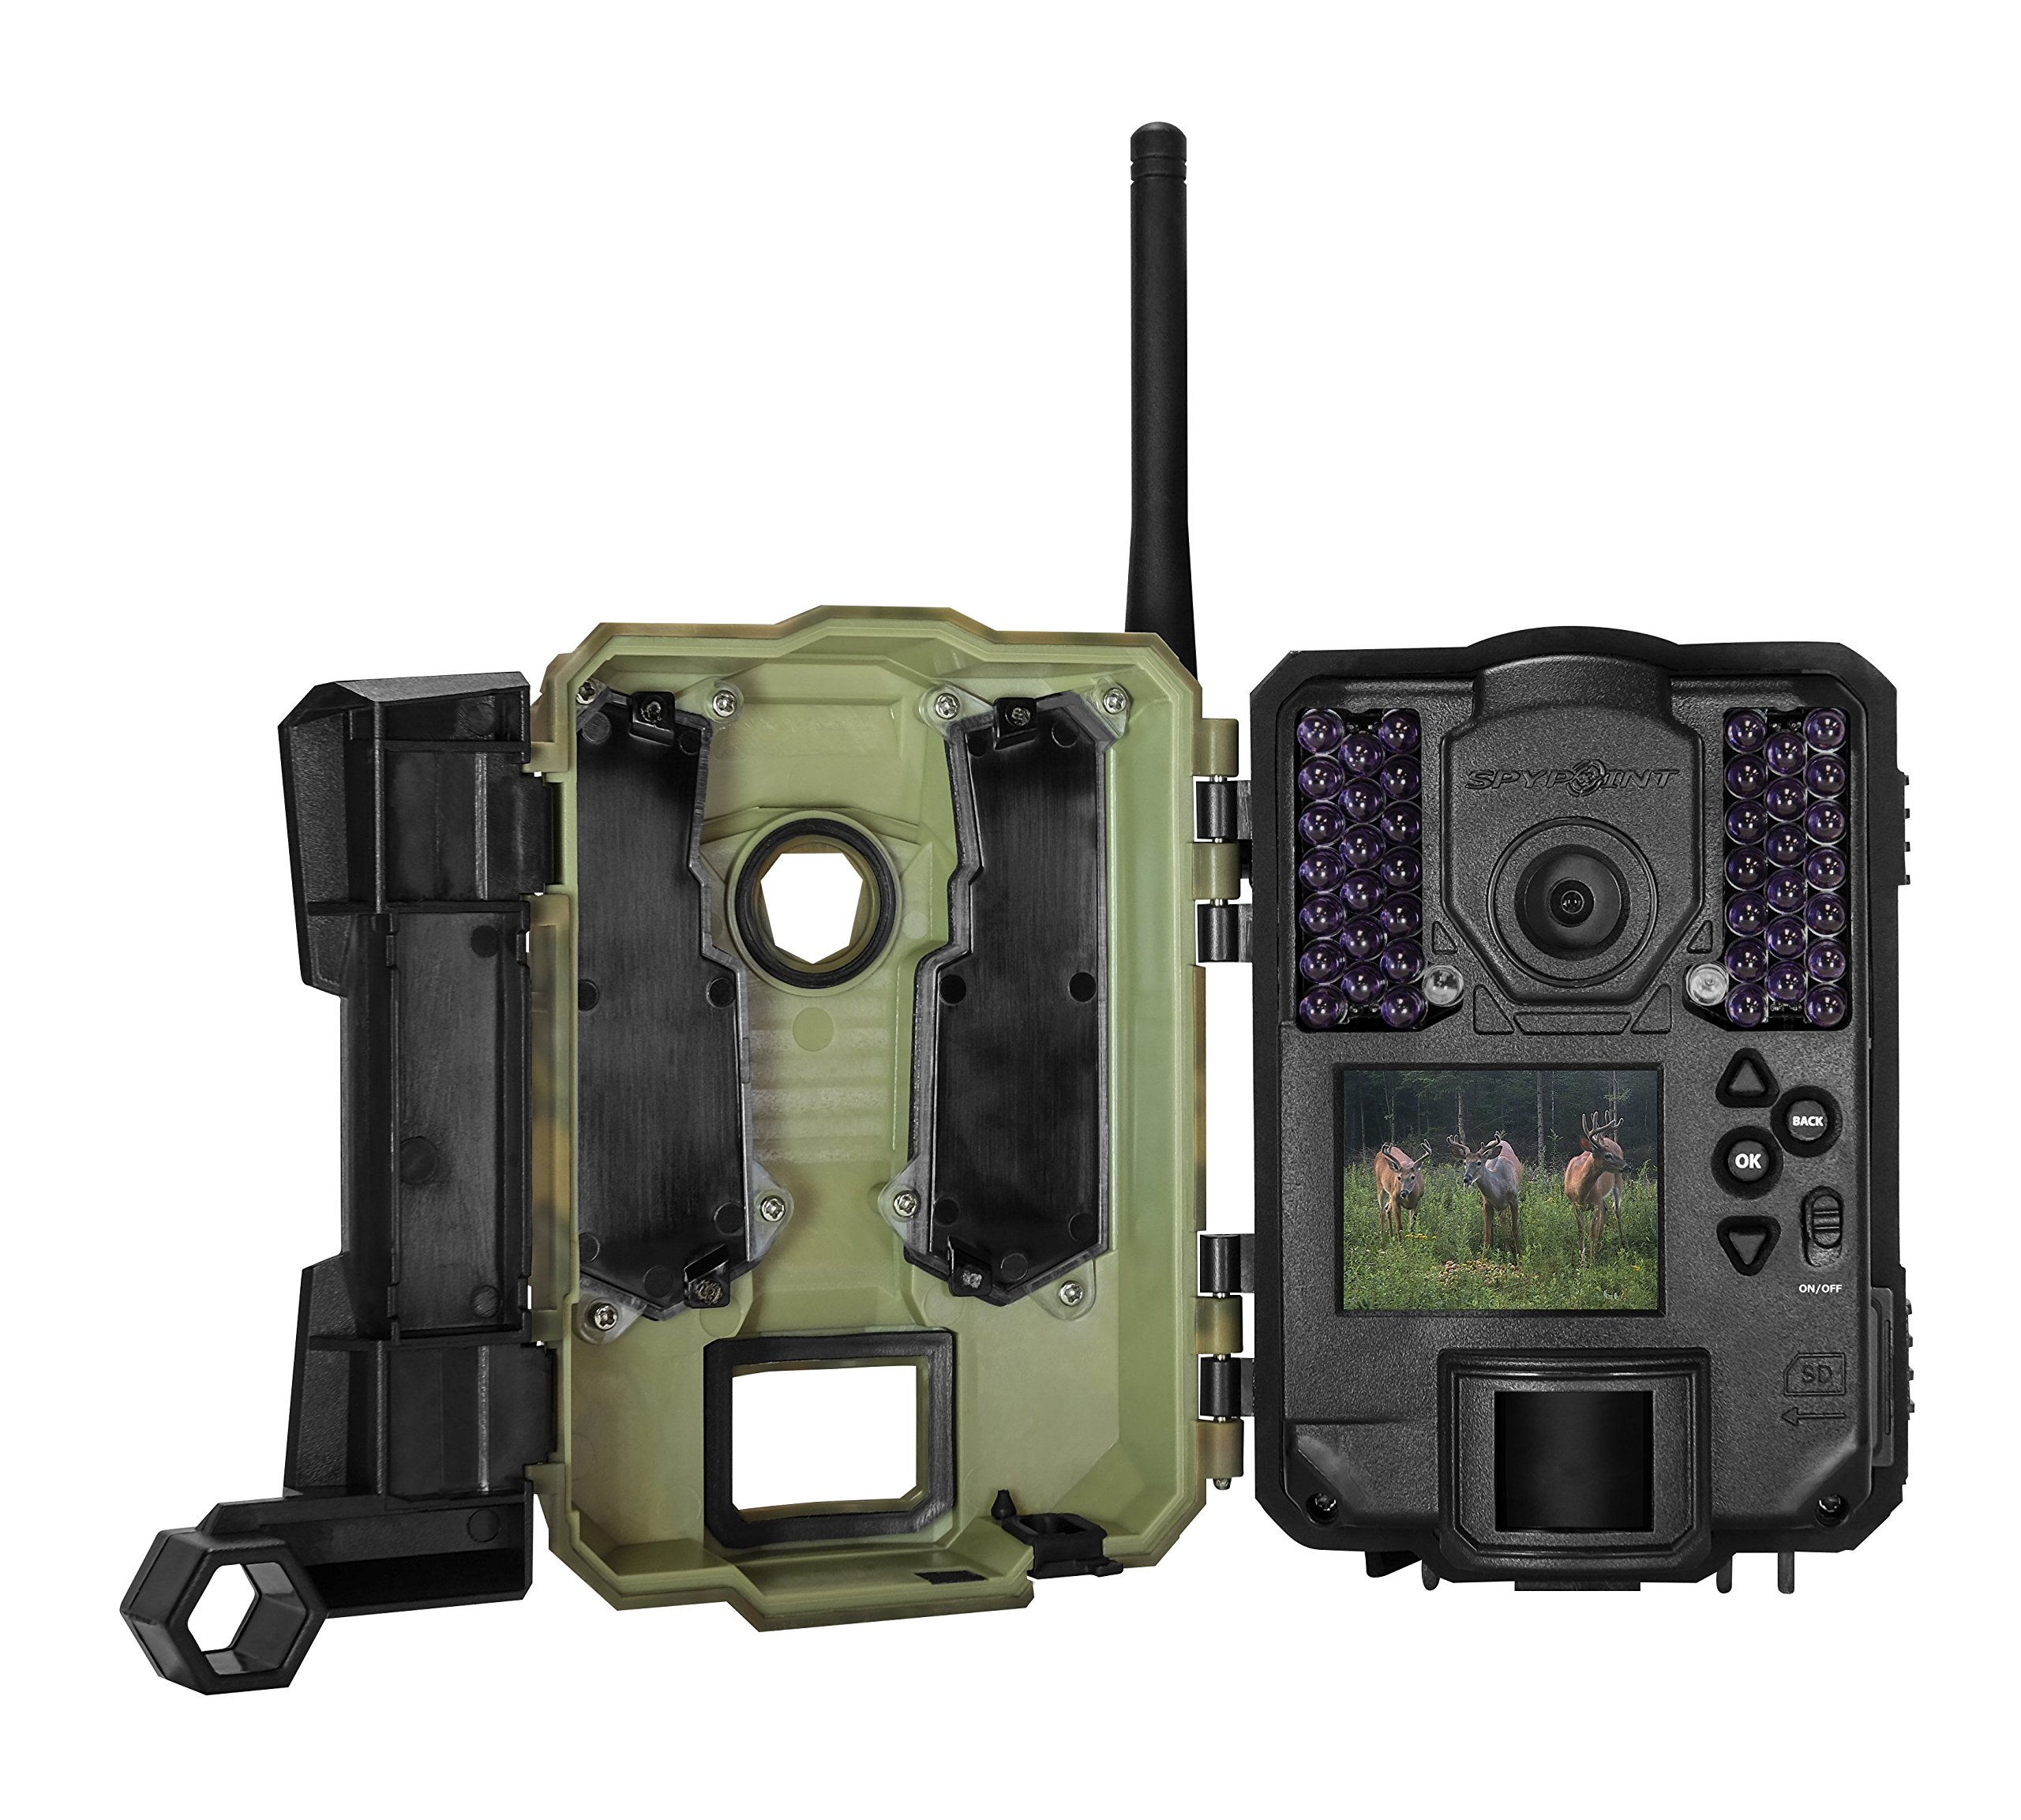 SPYPOINT Link-Dark Cellular Trail Camera, NO Verizon by SPYPOINT (Image #6)